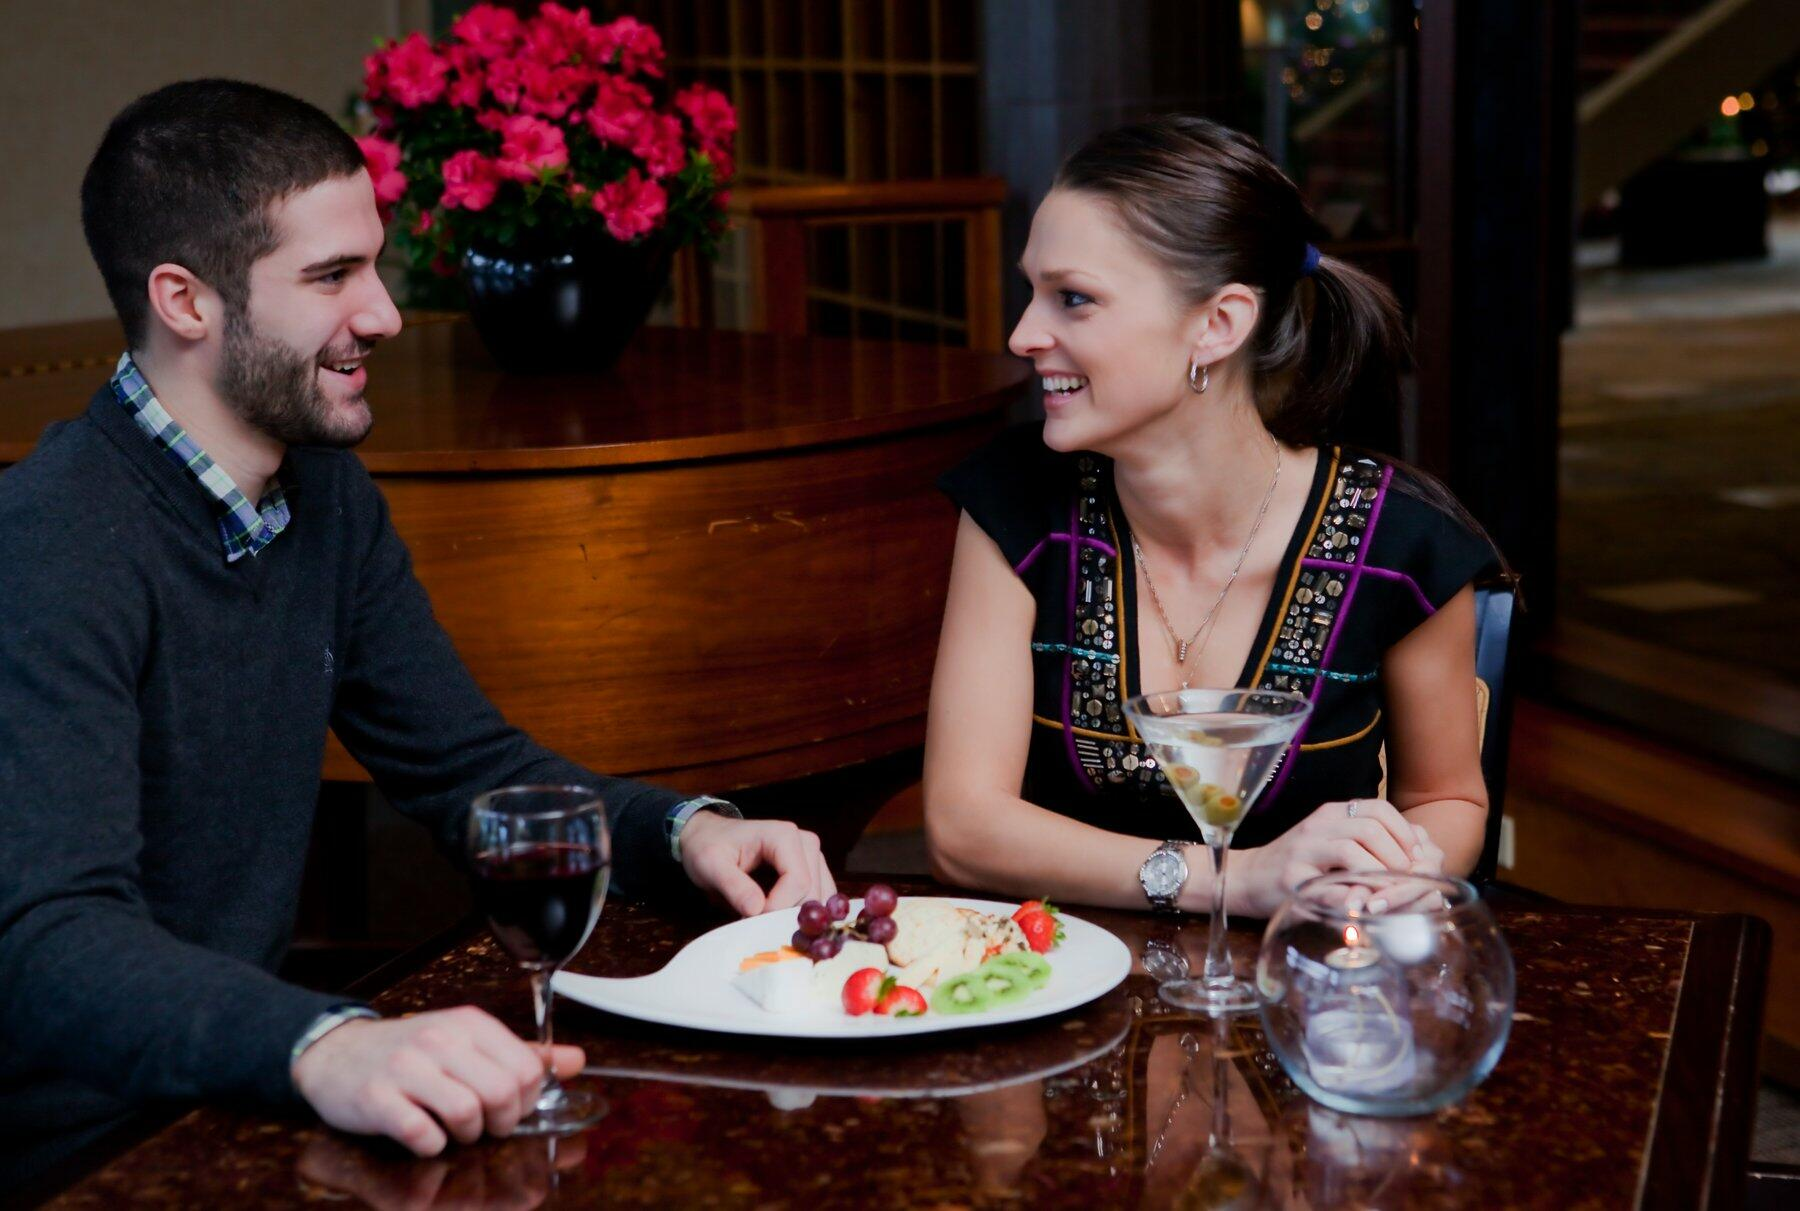 Couple enjoying appetizer and drinks.